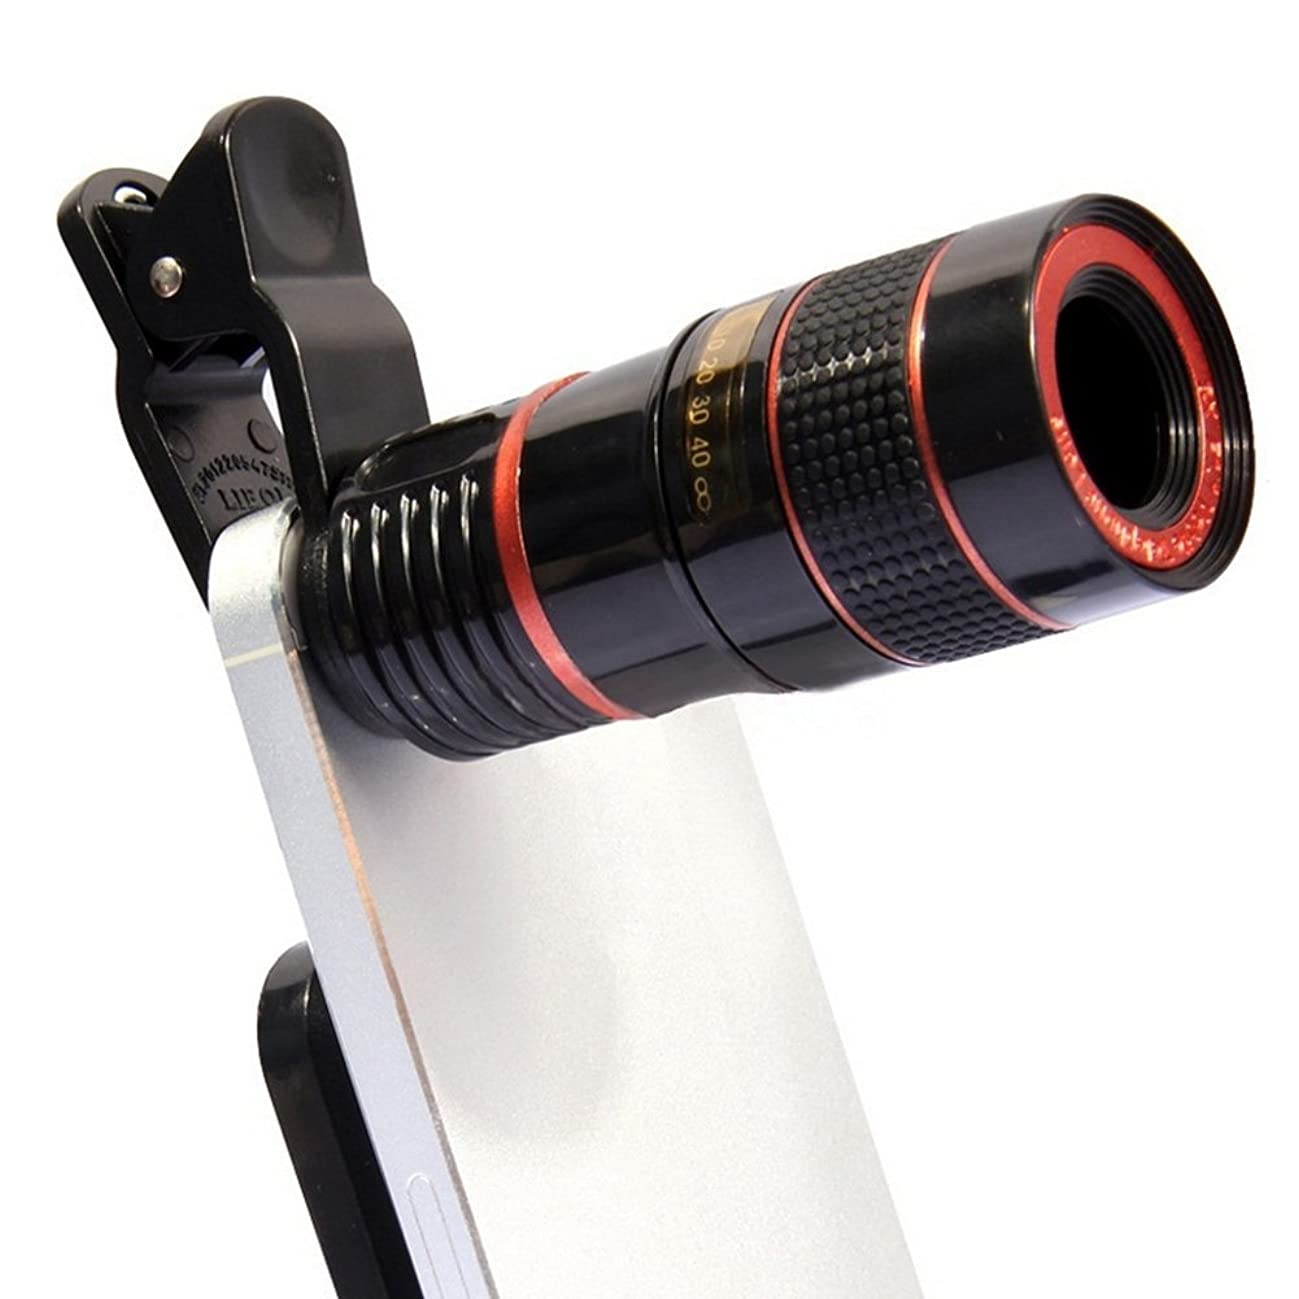 Brawdress 8X Zoom Optical Telescope Mobile Phone Camera Lens with Clip for iPhone Samsung HTC Huawei Sony